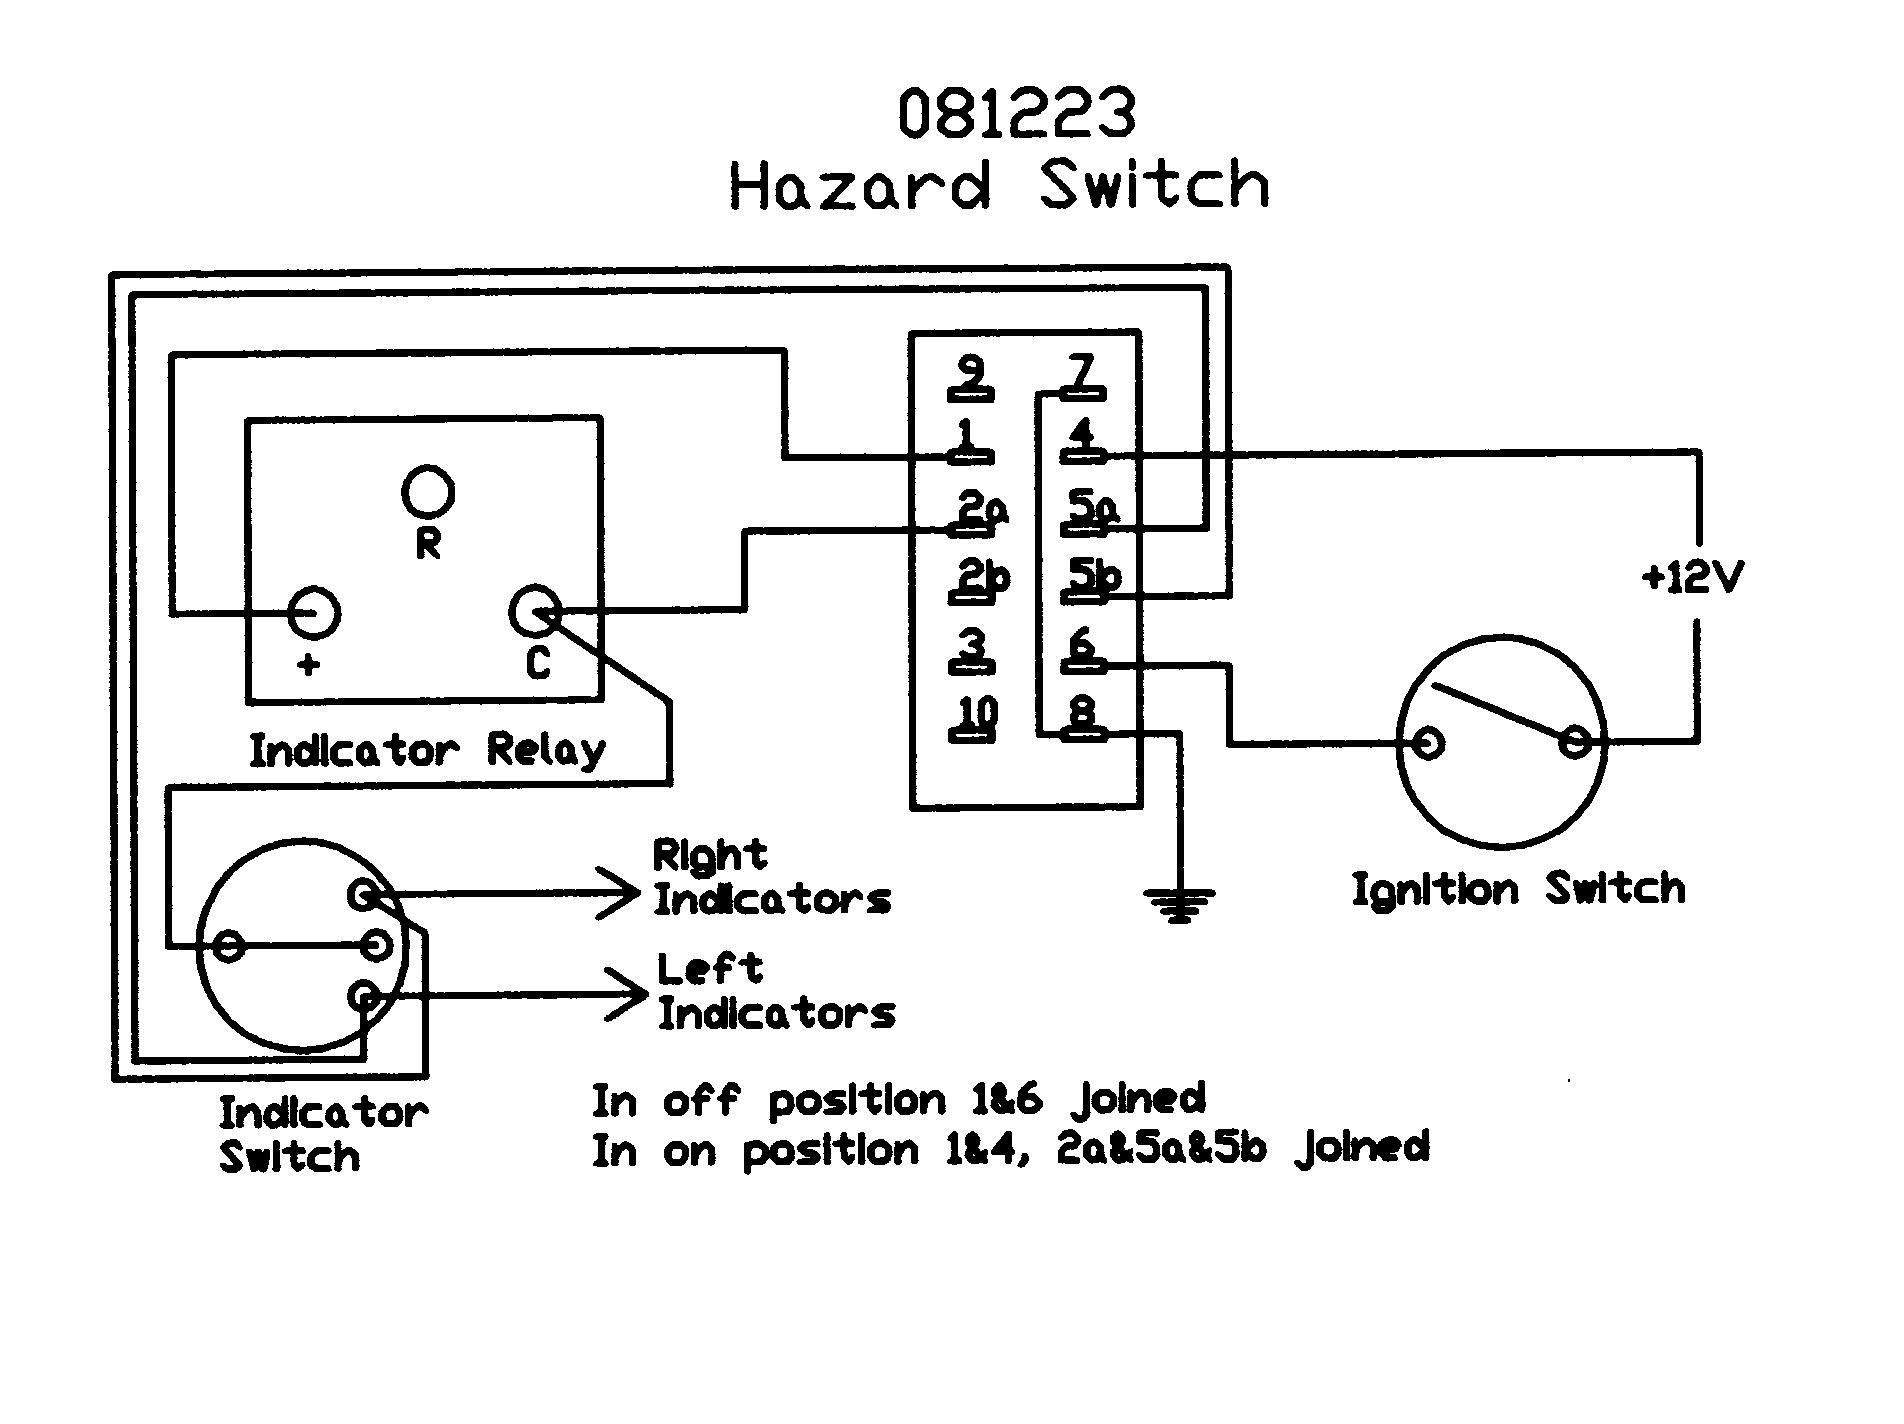 12 Volt Isolator Wiring Diagram Will Be A Thing Boat Dual Battery Rocker Hazard Switch